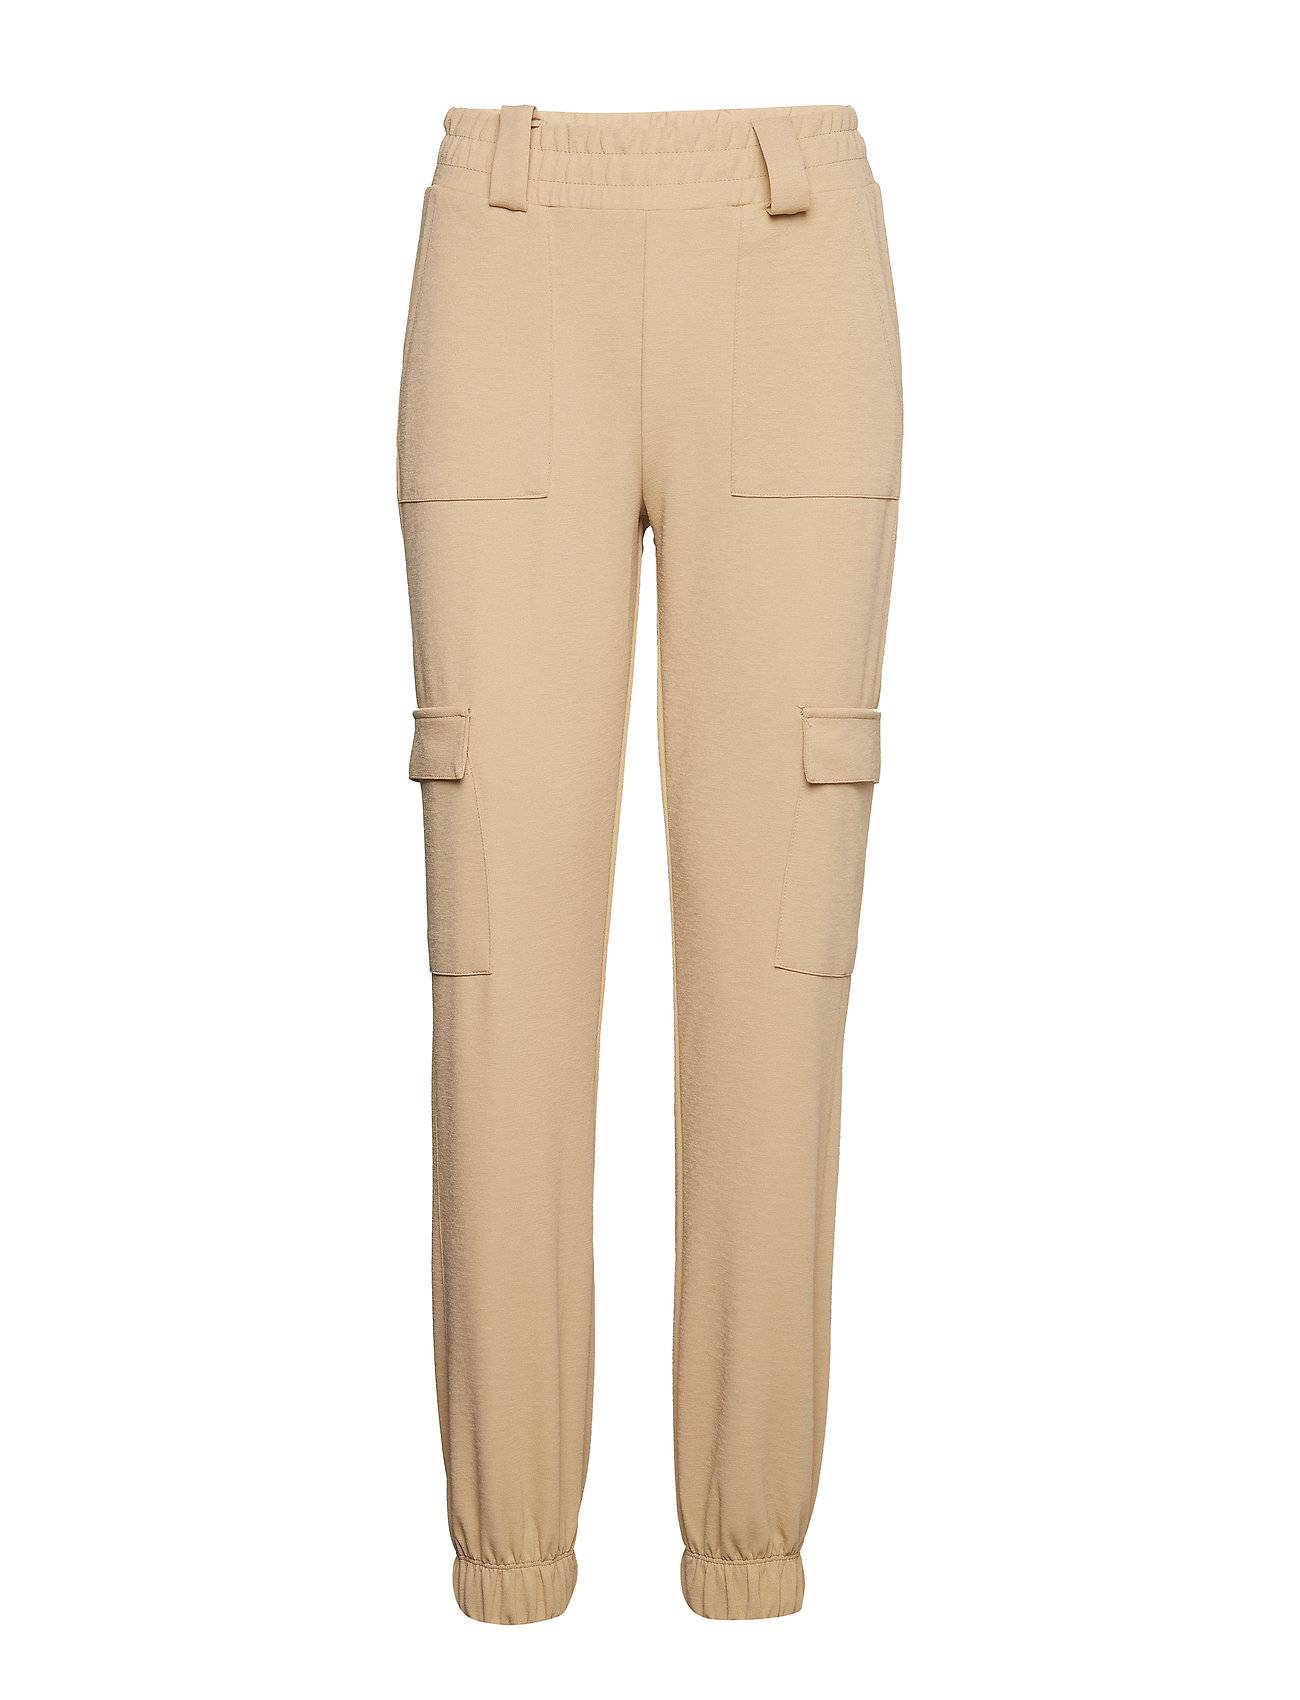 Gina Tricot Cory Cargo Trousers